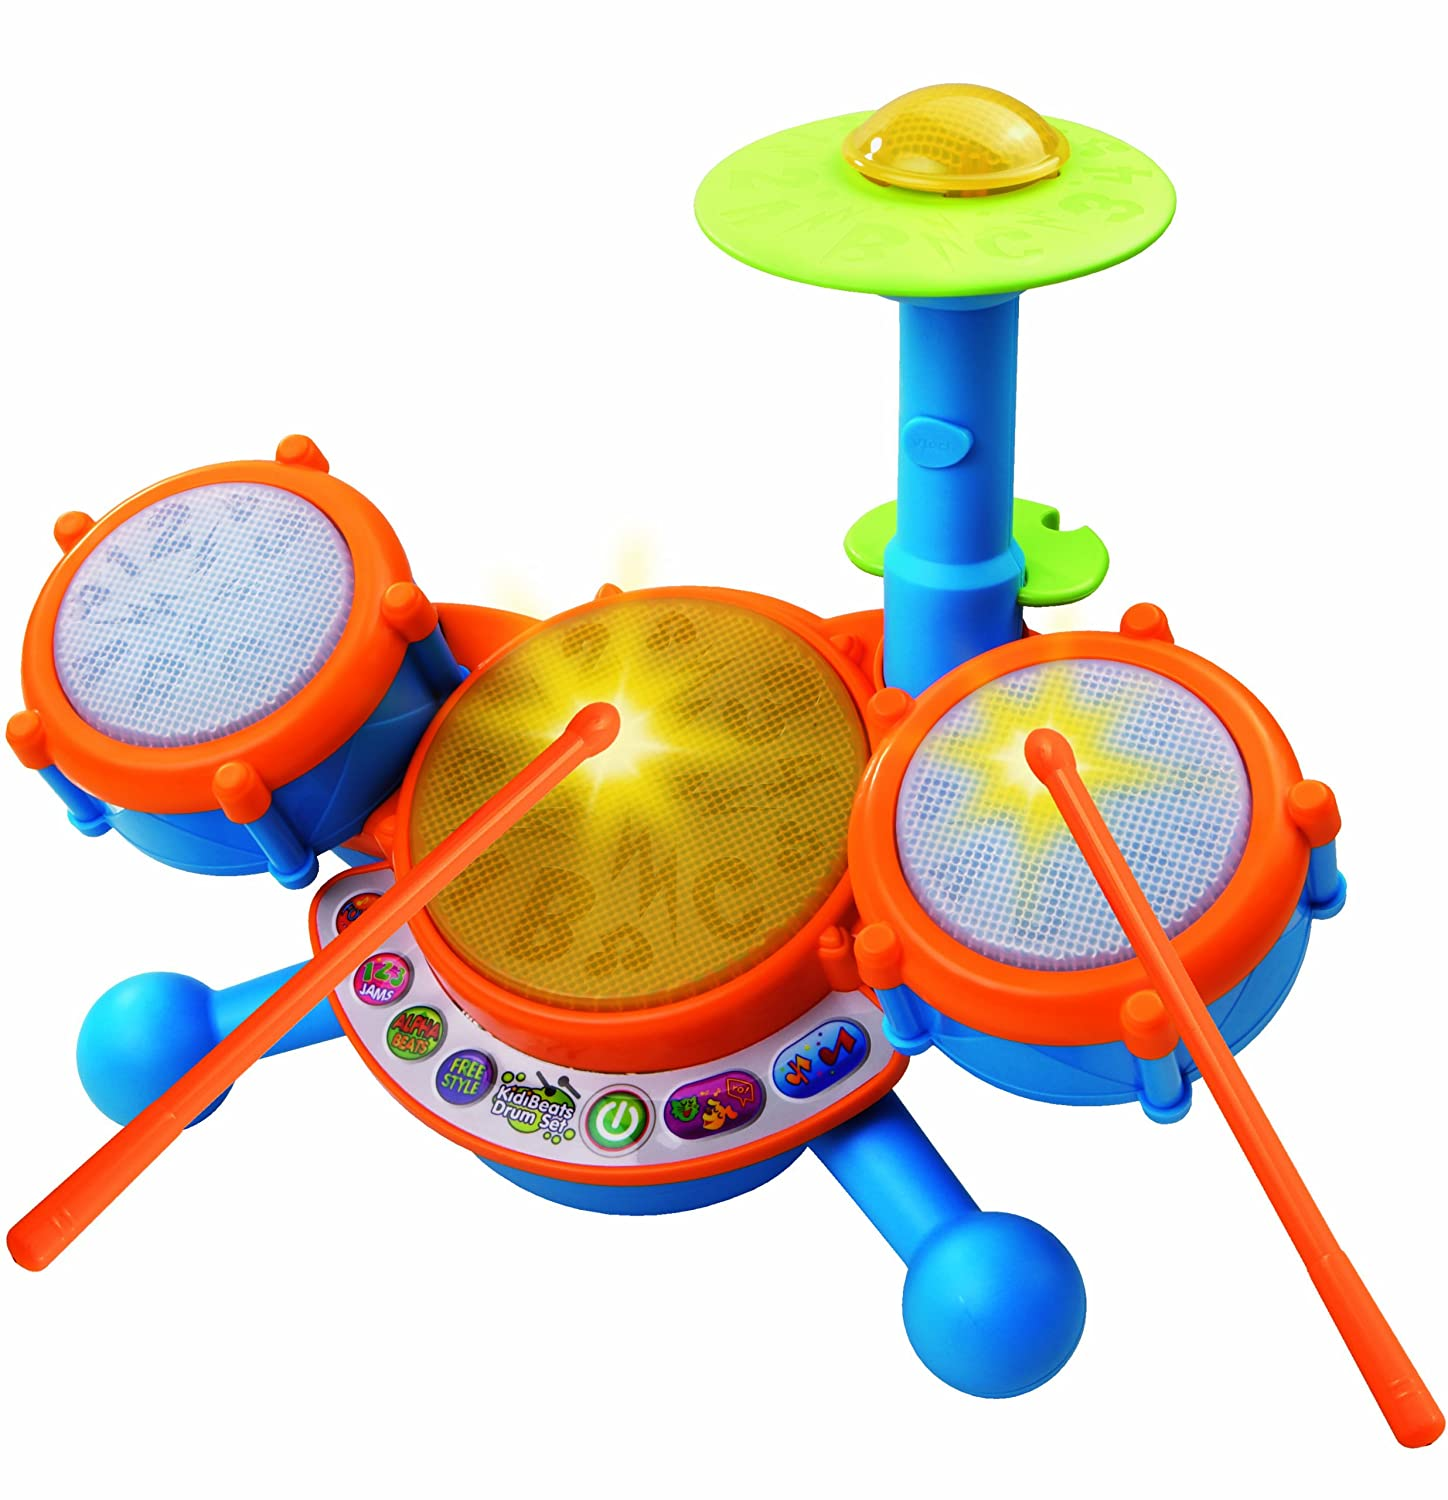 Drum Toy For 1 Year Olds : Best gifts for year old girls in itsy bitsy fun